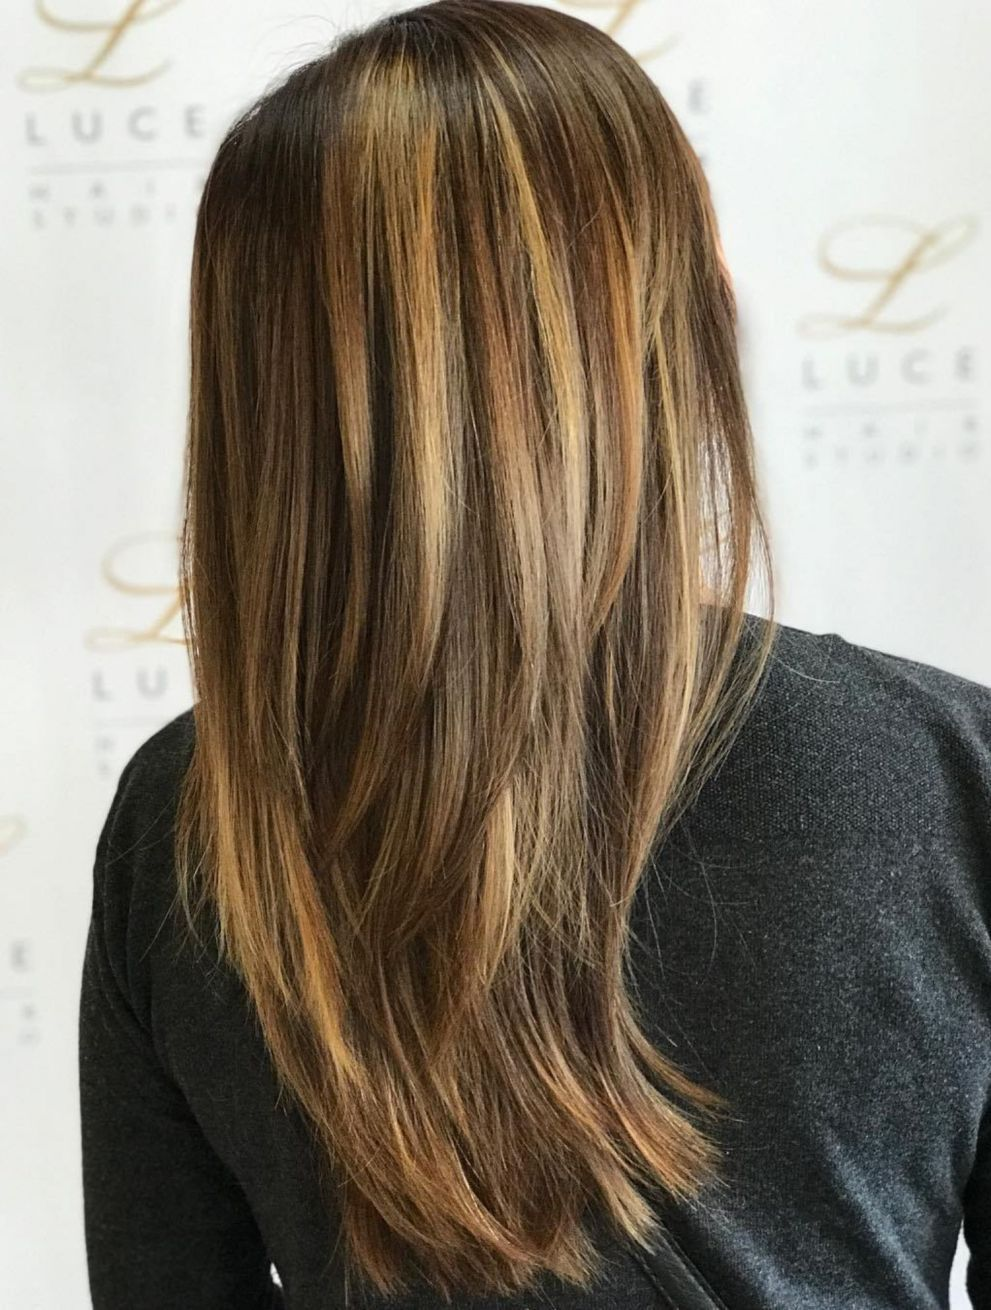 40 picture-perfect hairstyles for long thin hair   hair in